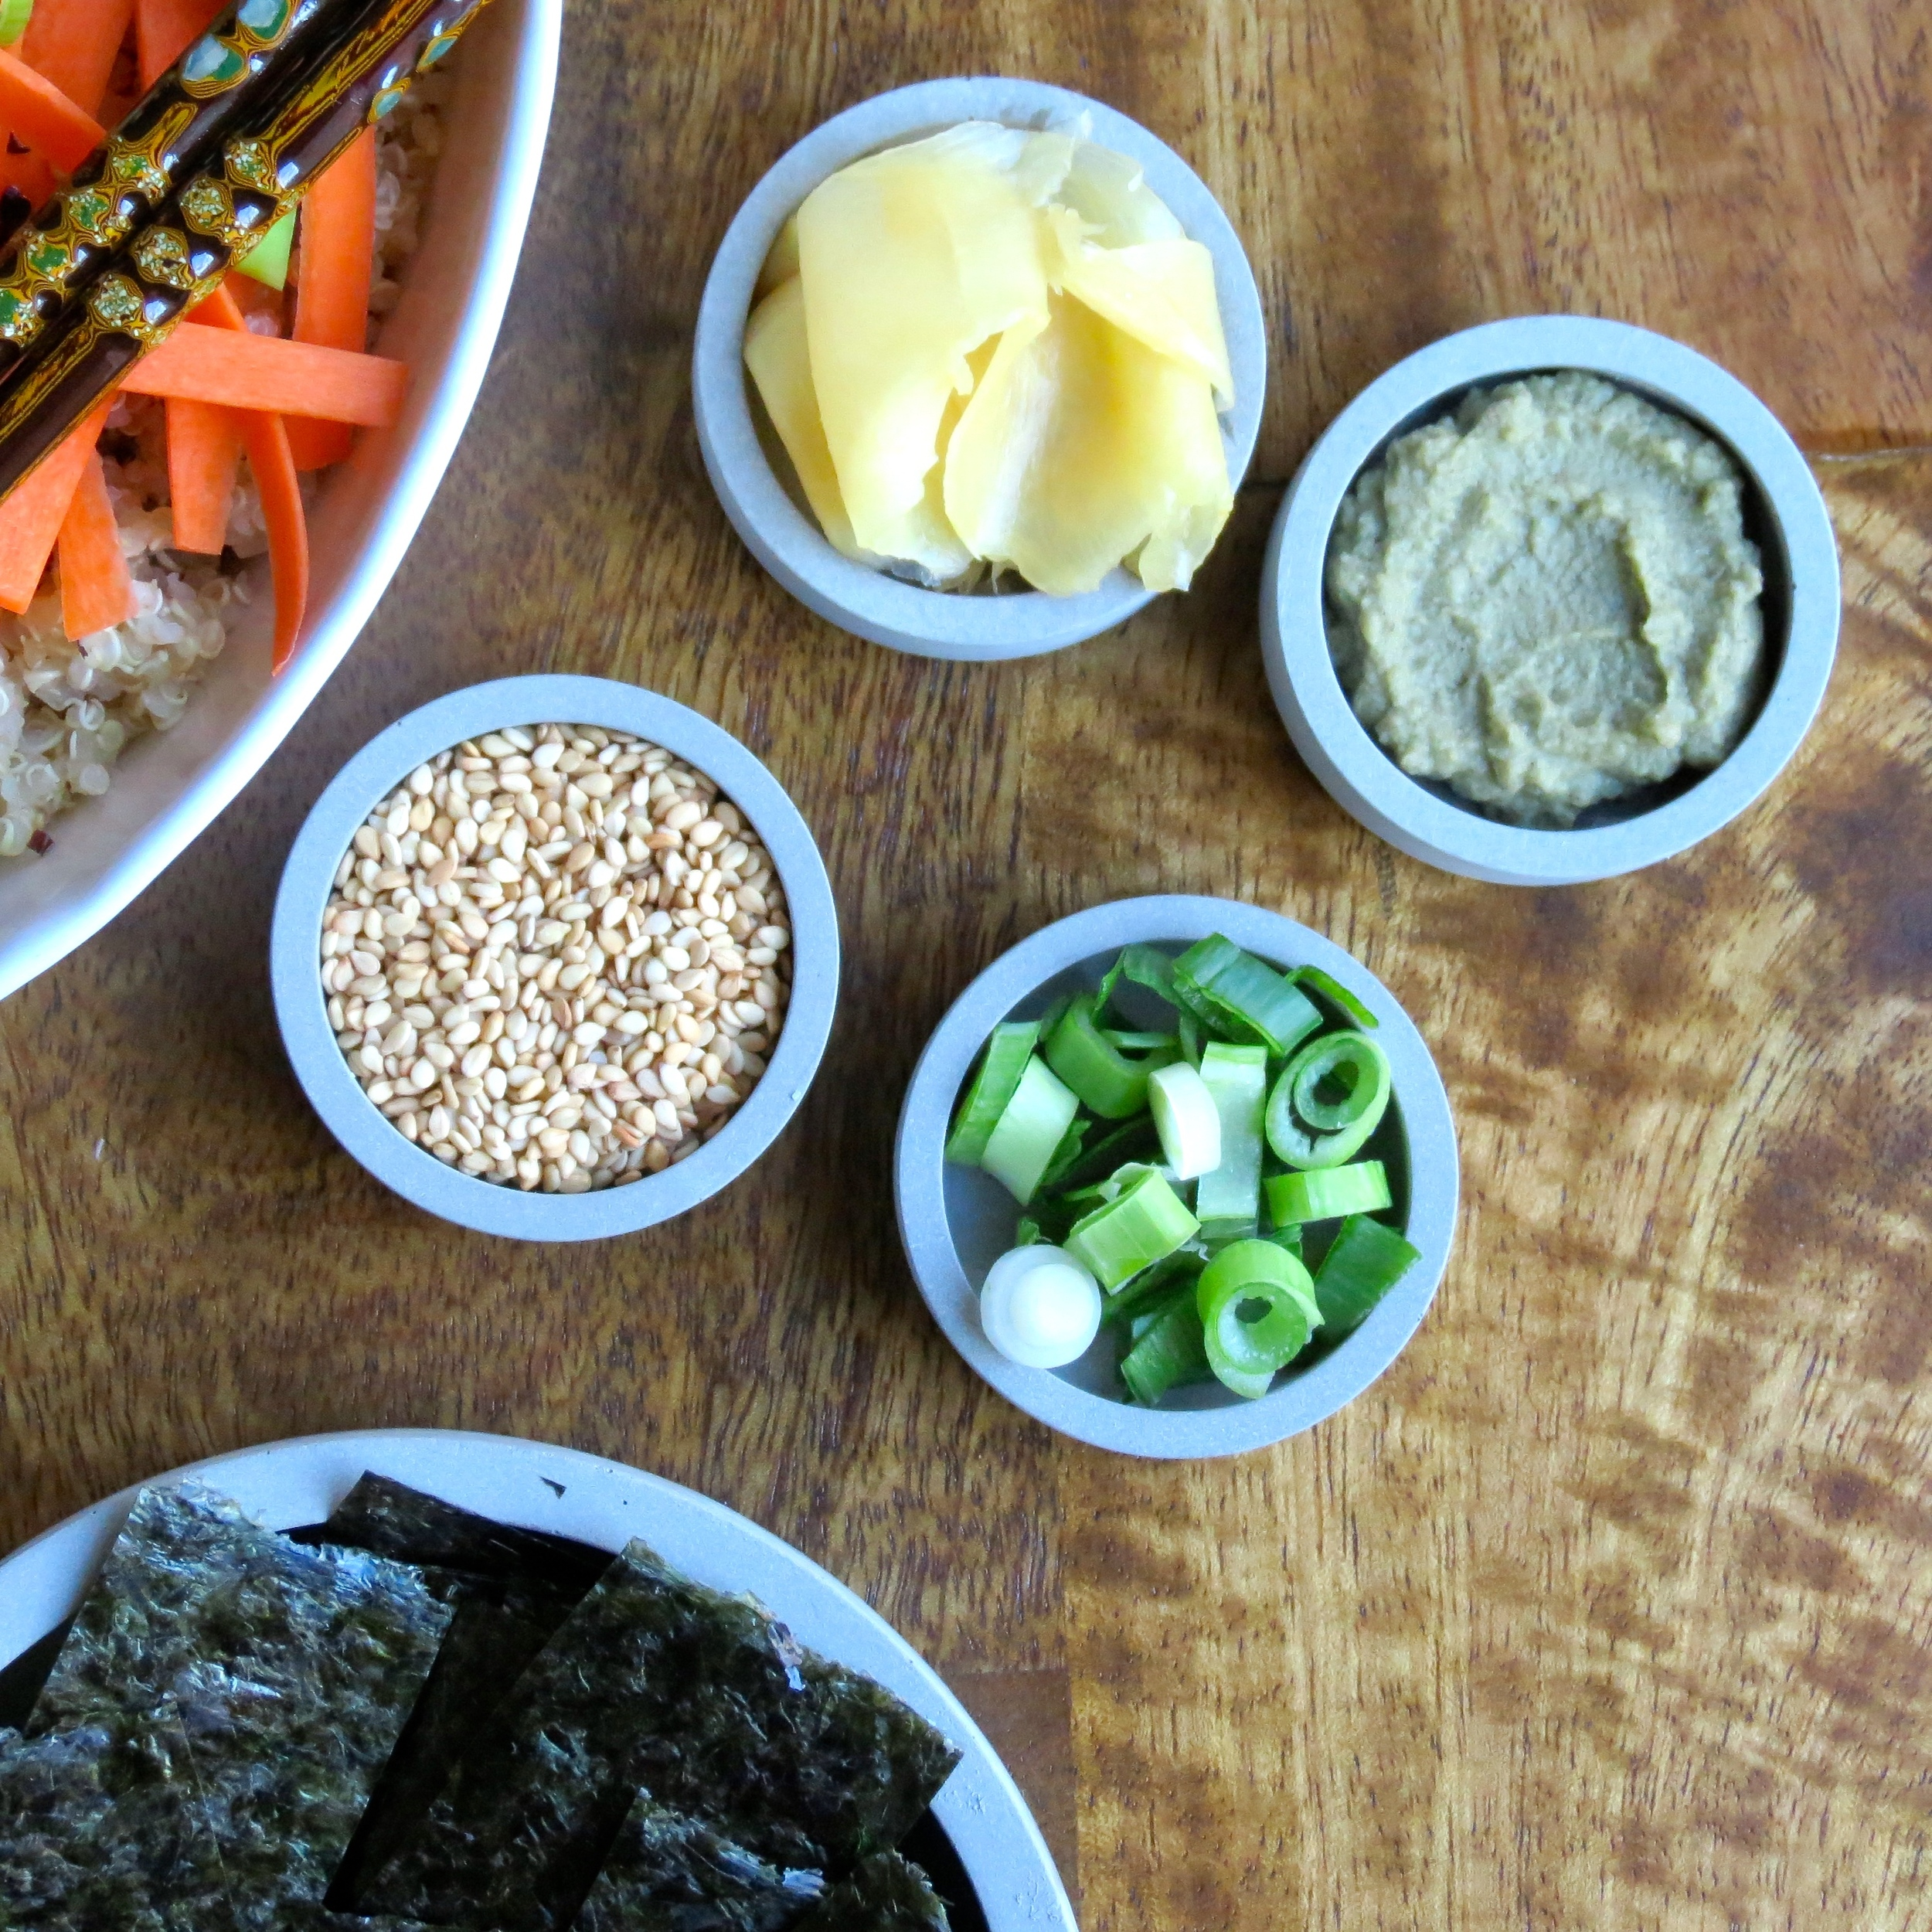 Ginger, wasabi, green onions, and nori strips make excellent companions to this bowl.